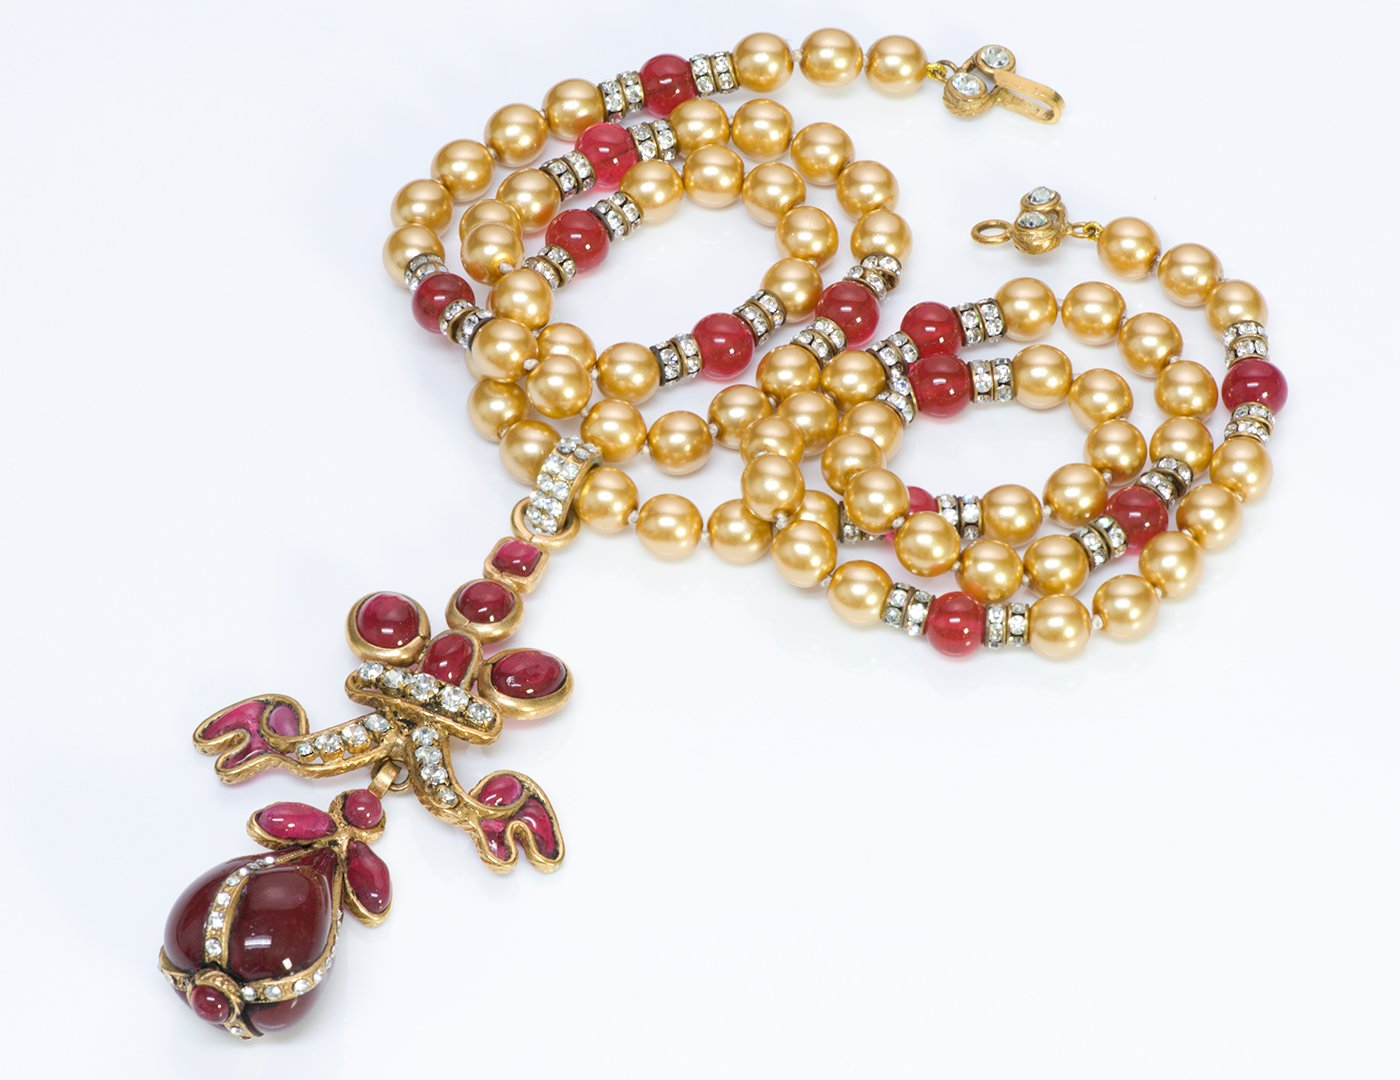 chanel-couture-gripoix-pearl-necklace